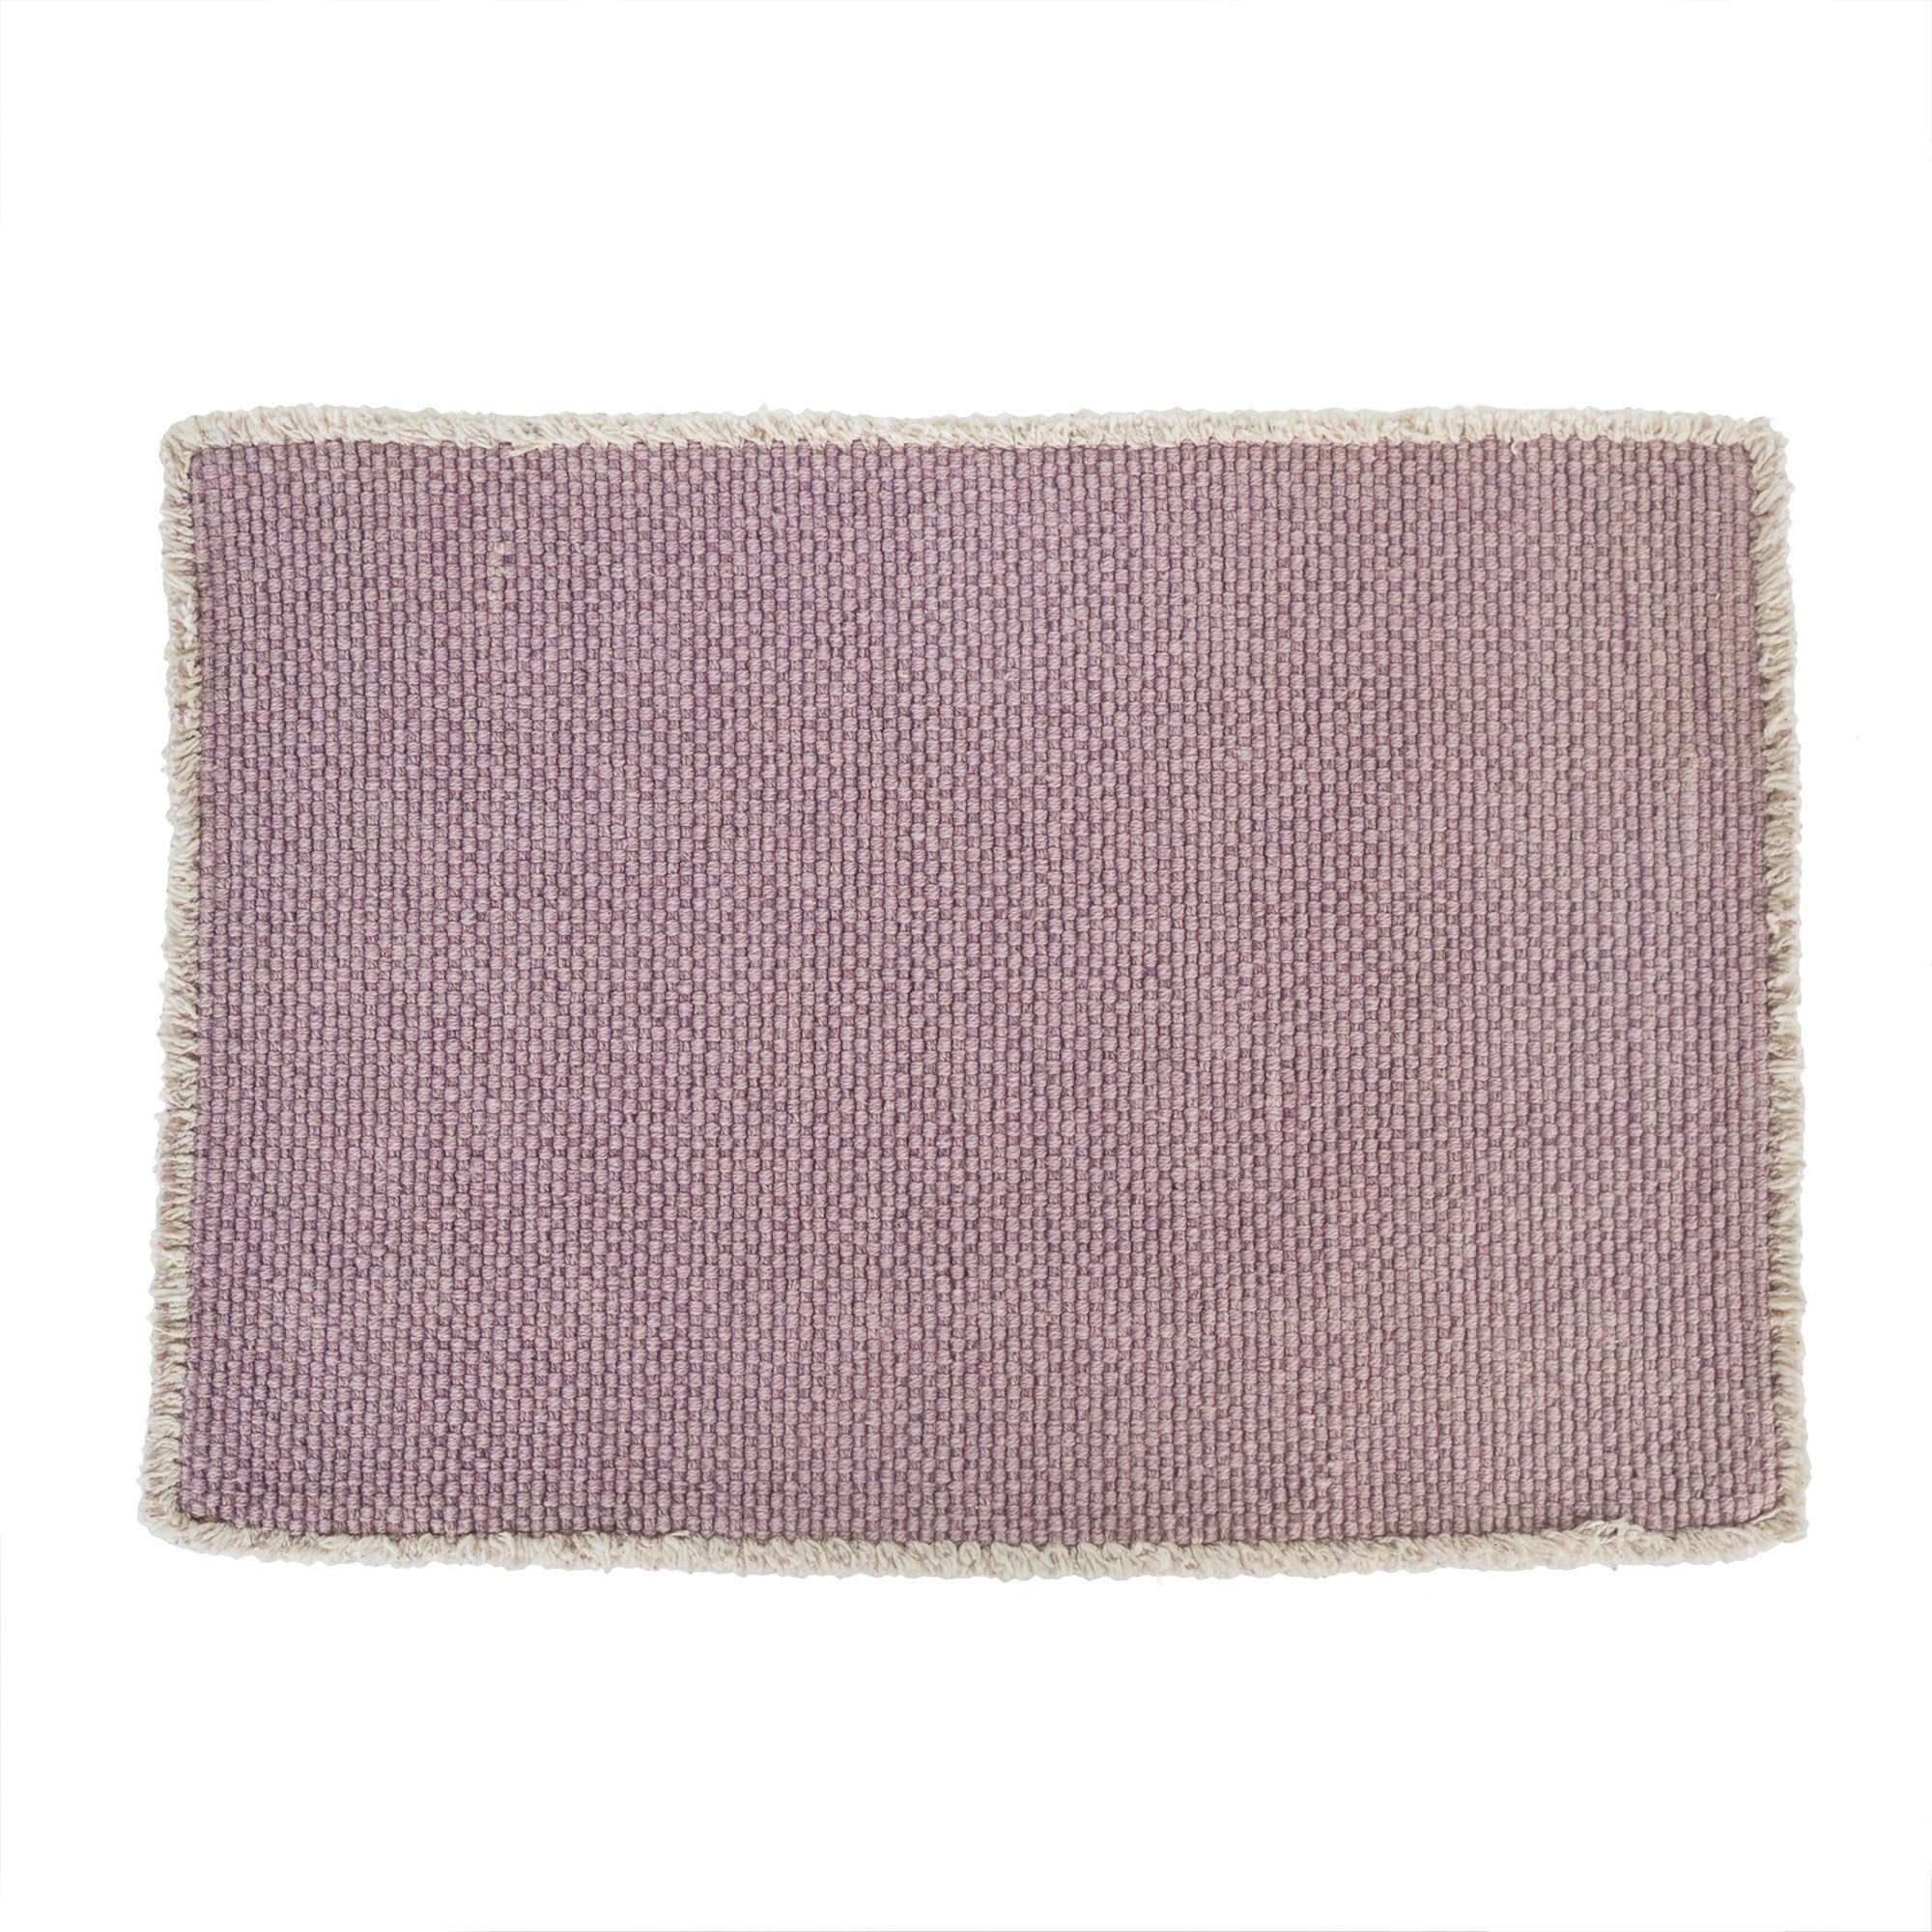 Stonewashed Placemat - Pink